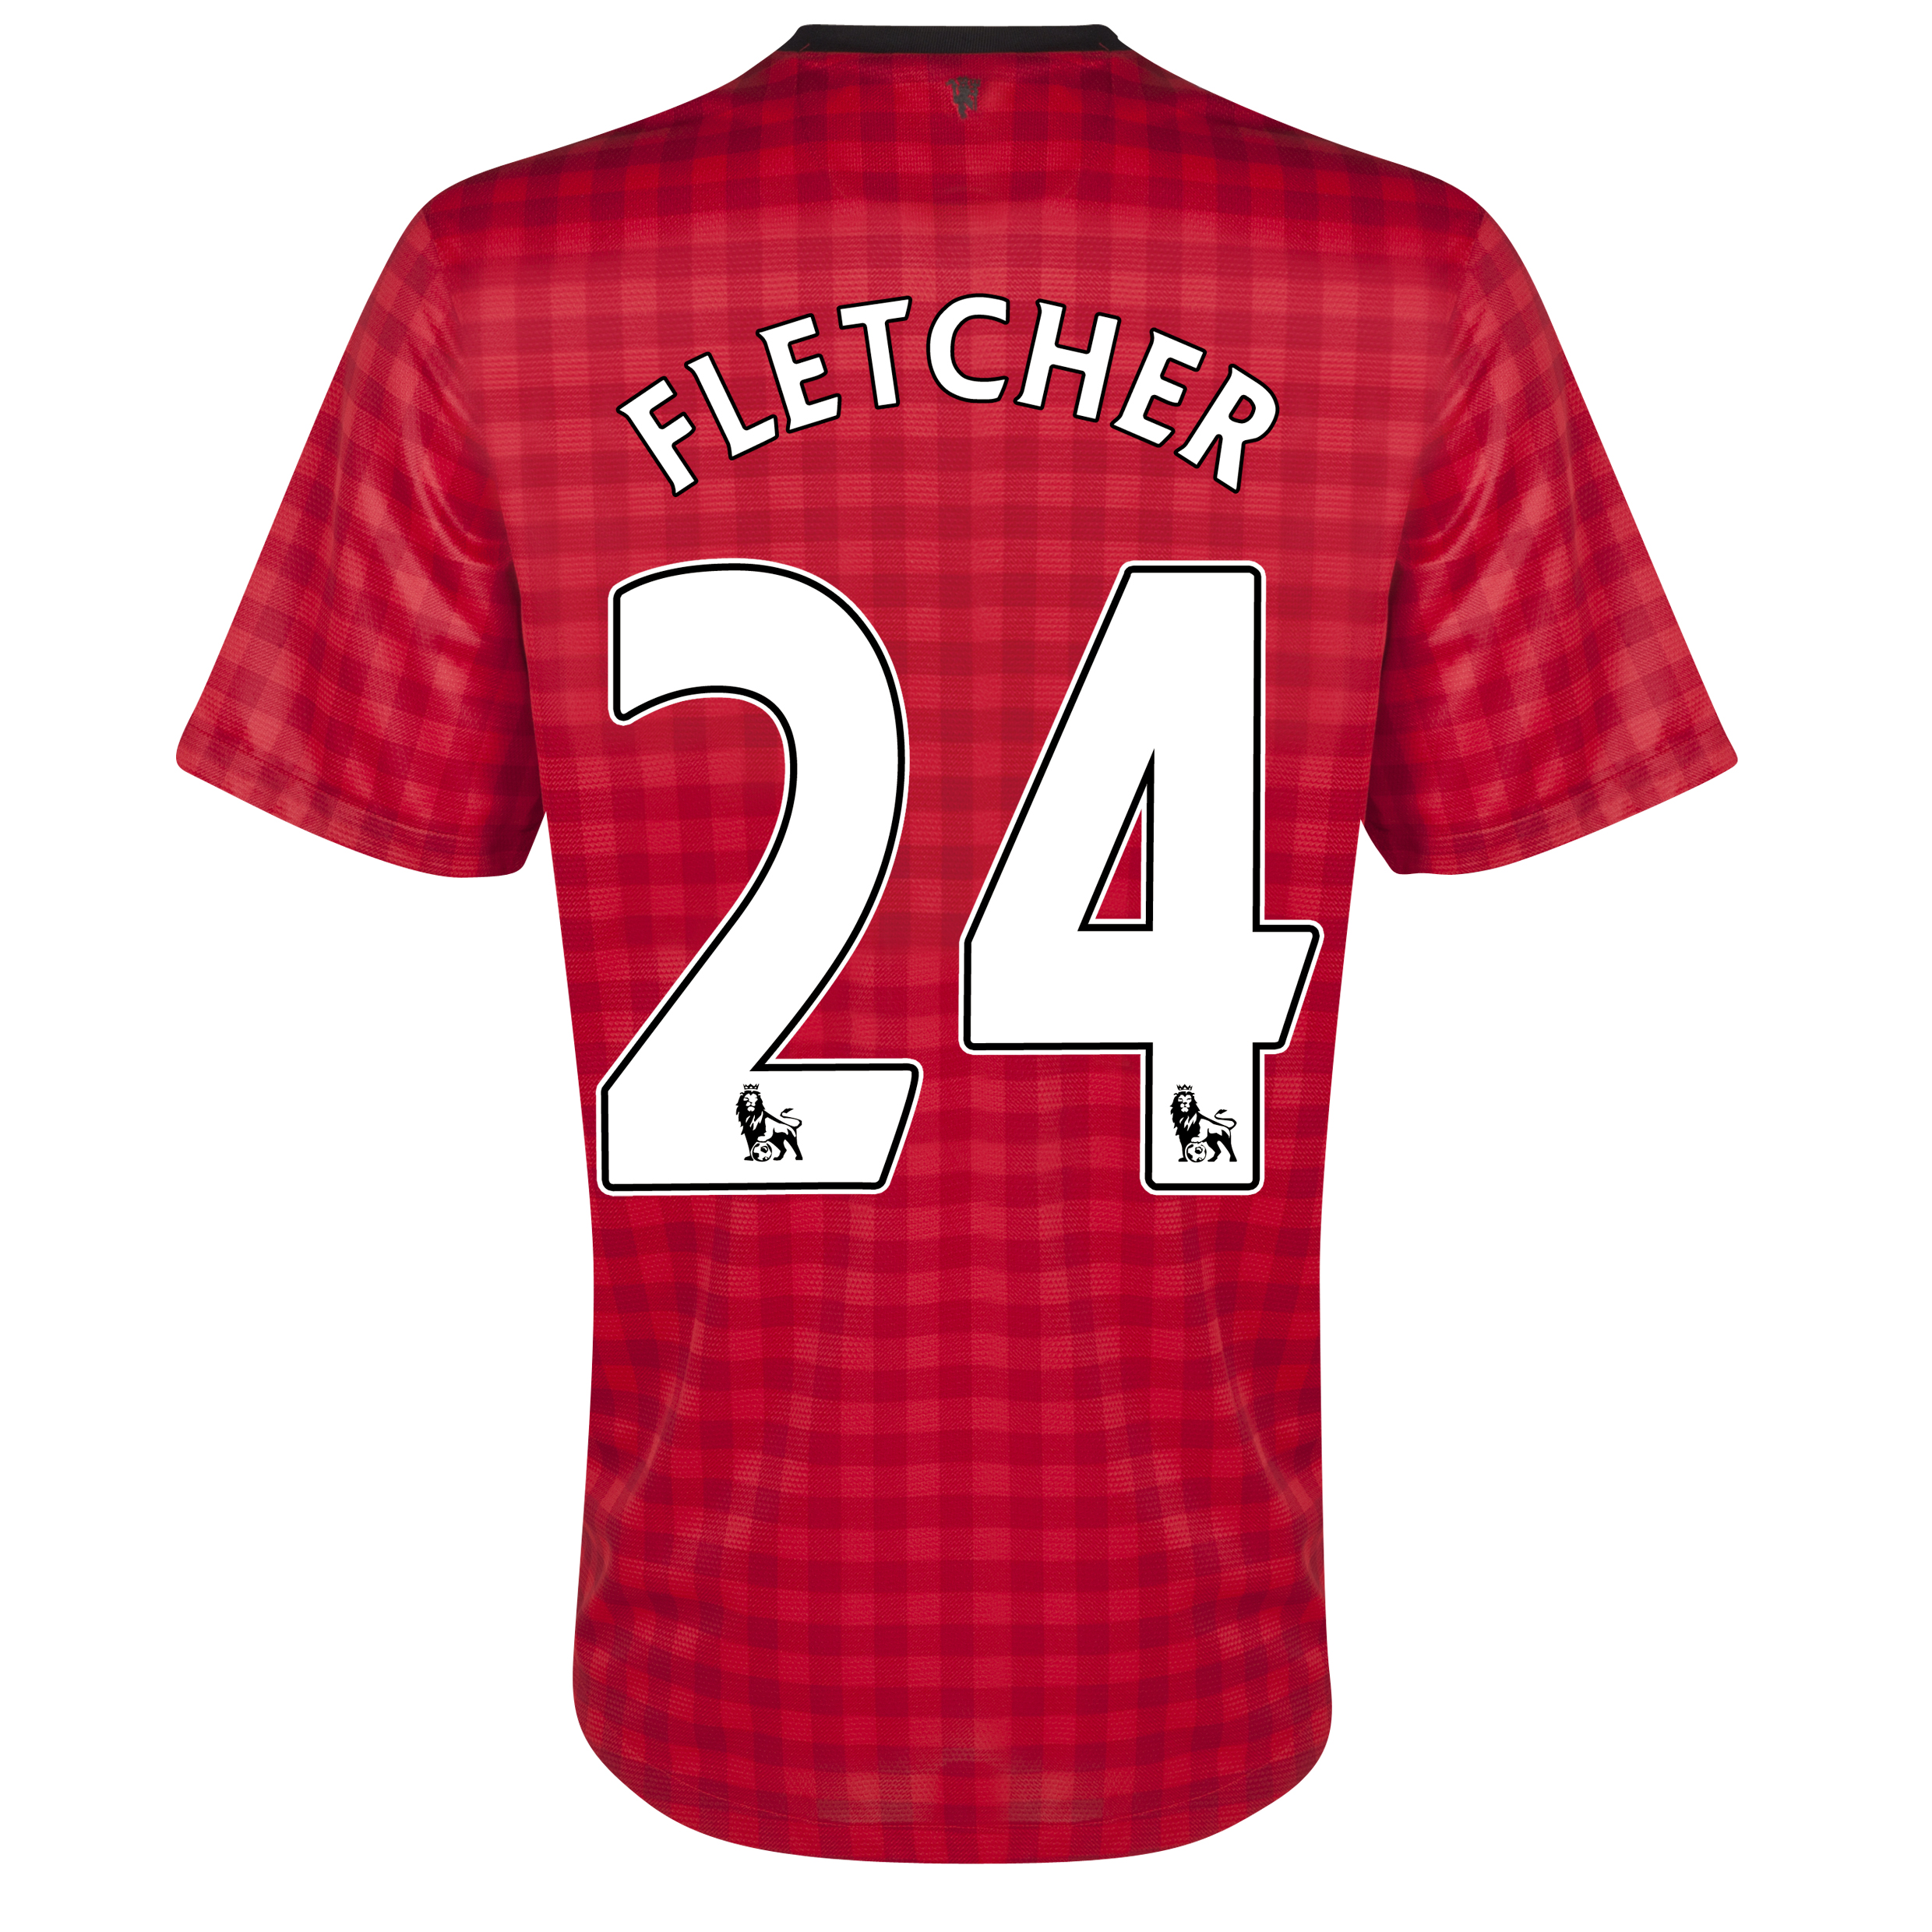 Manchester United Home Shirt 2012/13 with Fletcher 24 printing